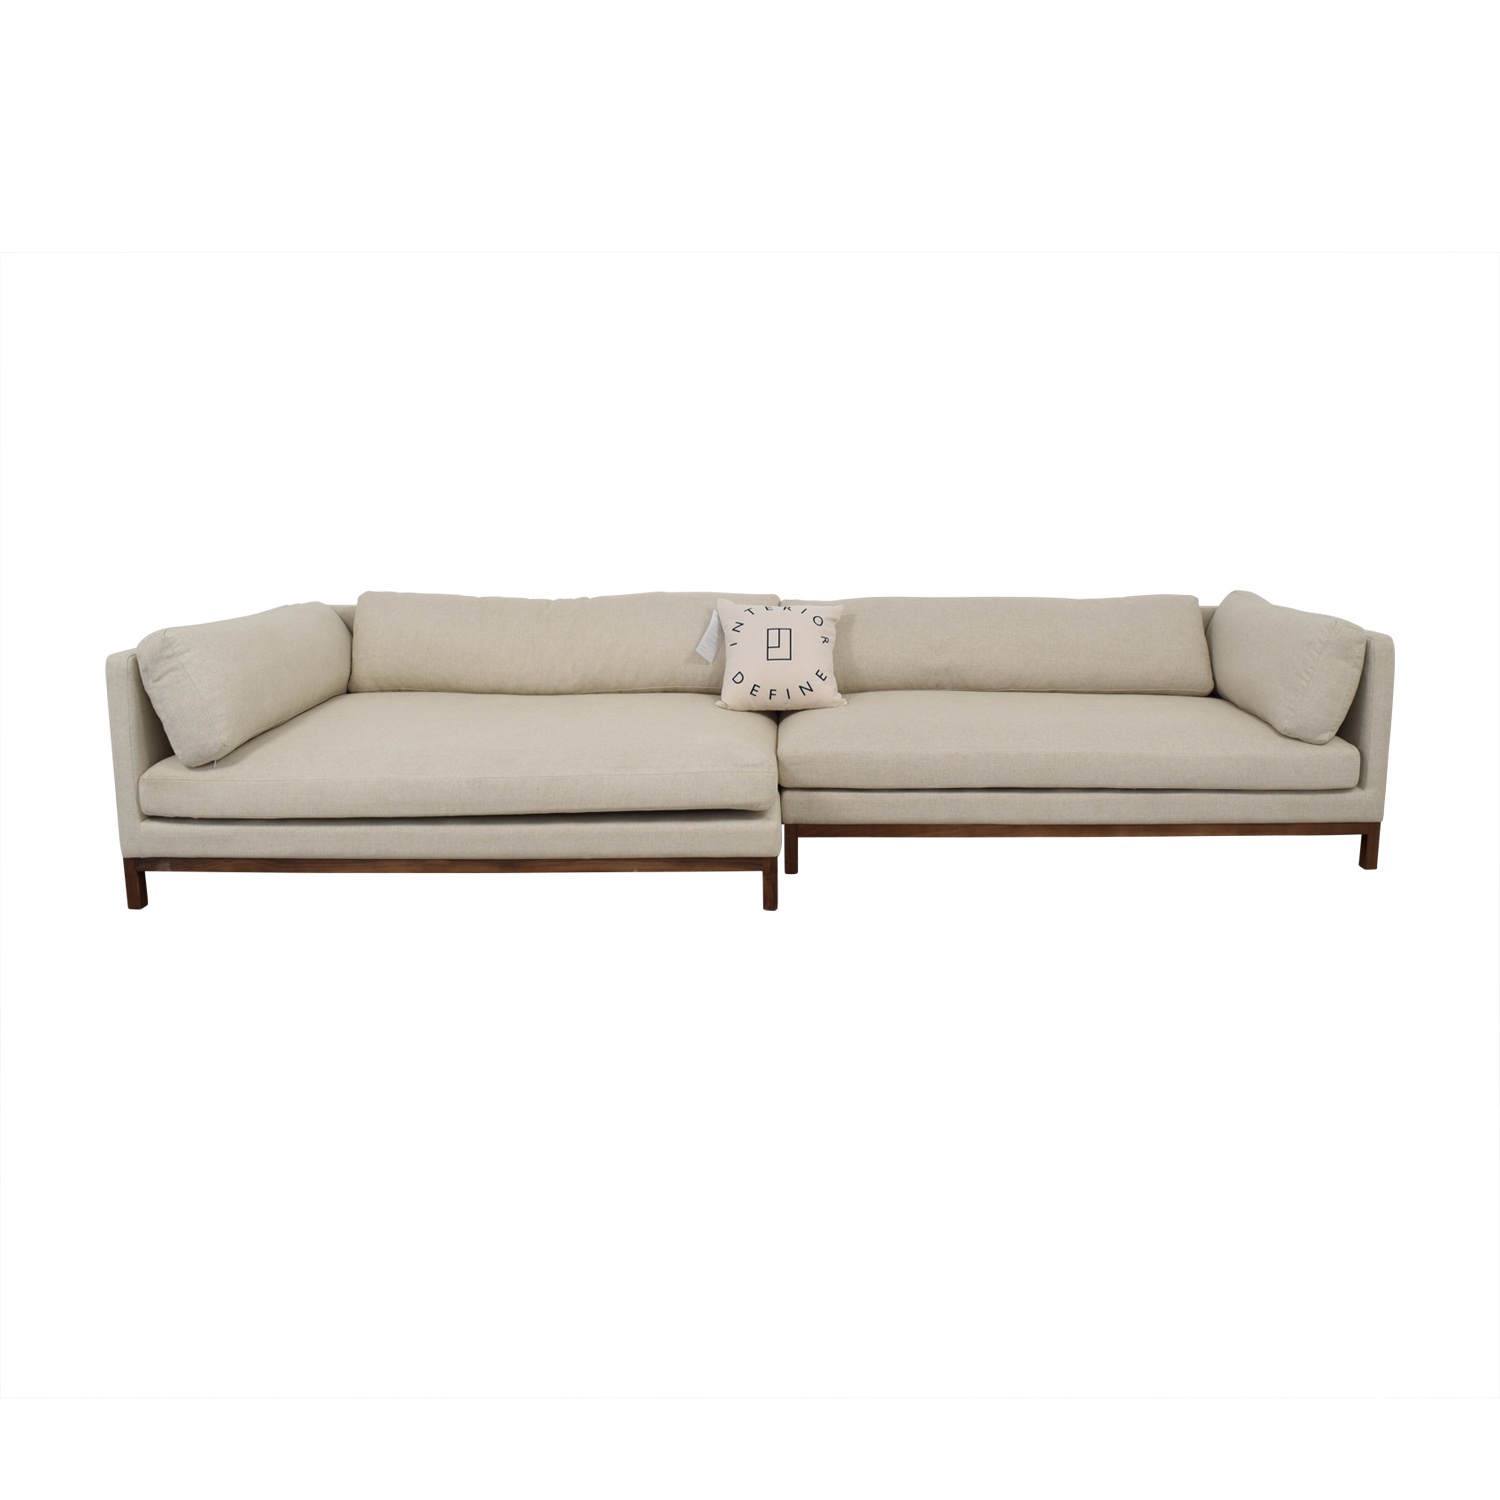 Jasper Left Chaise Sectional sale